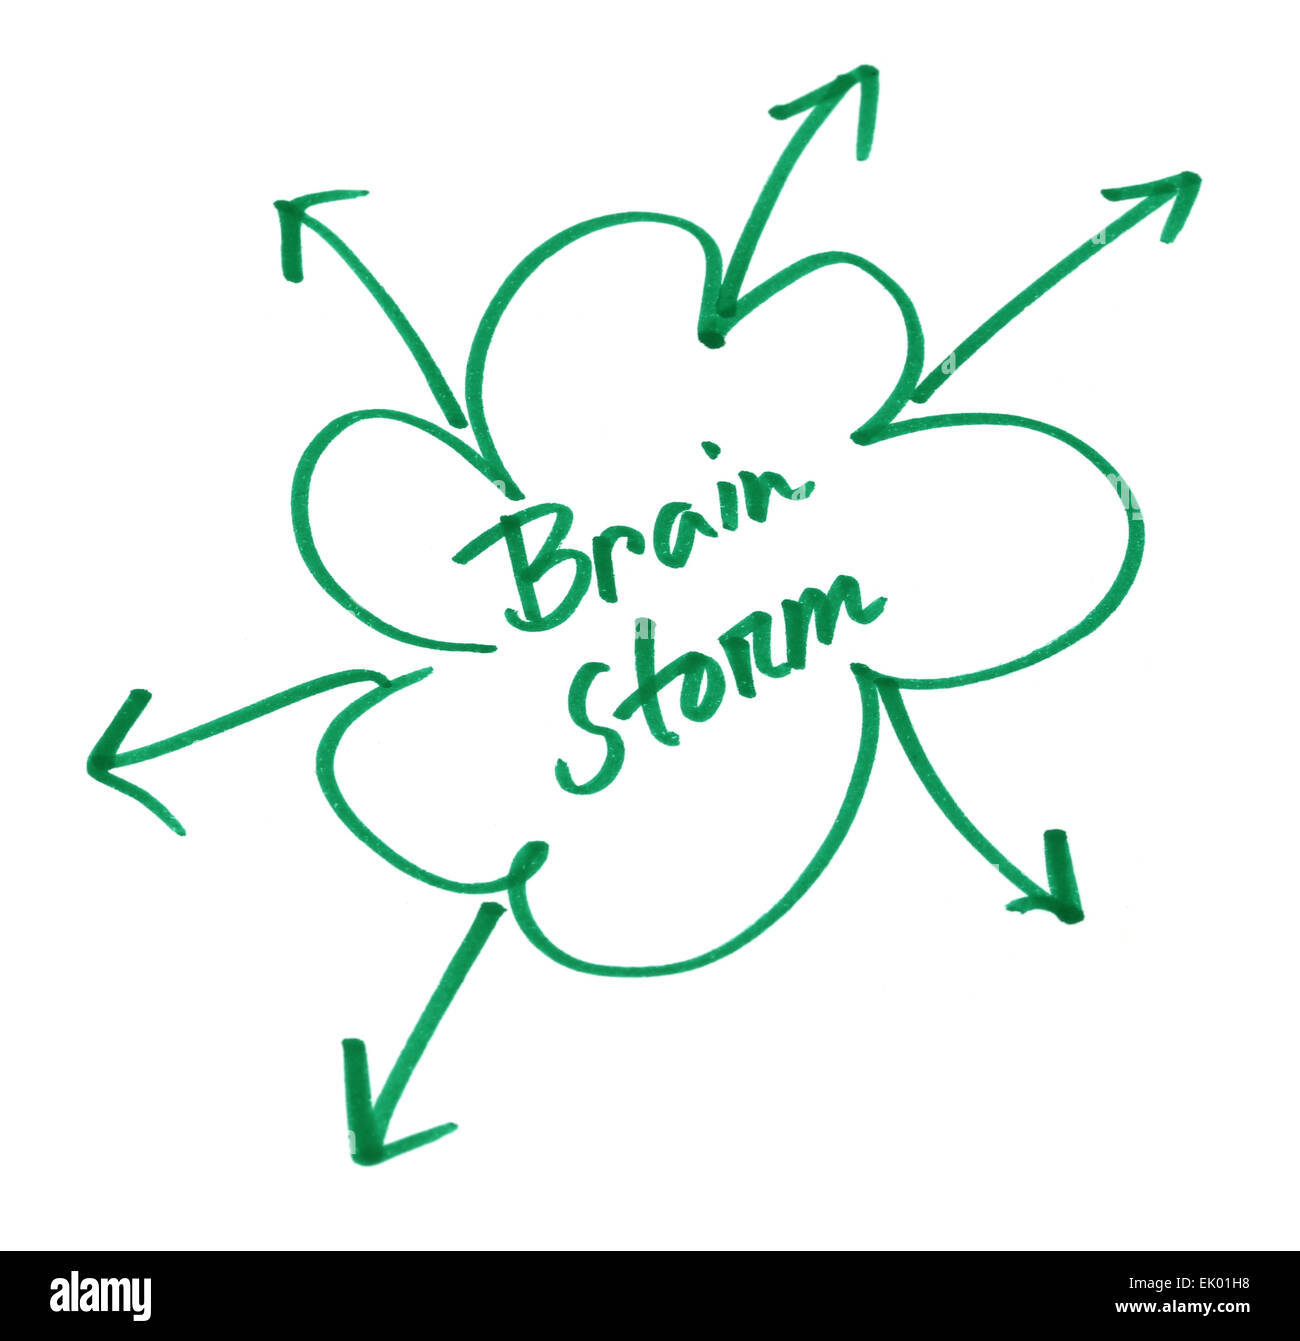 Brain Storm written in wihite paper with green ink - Stock Image